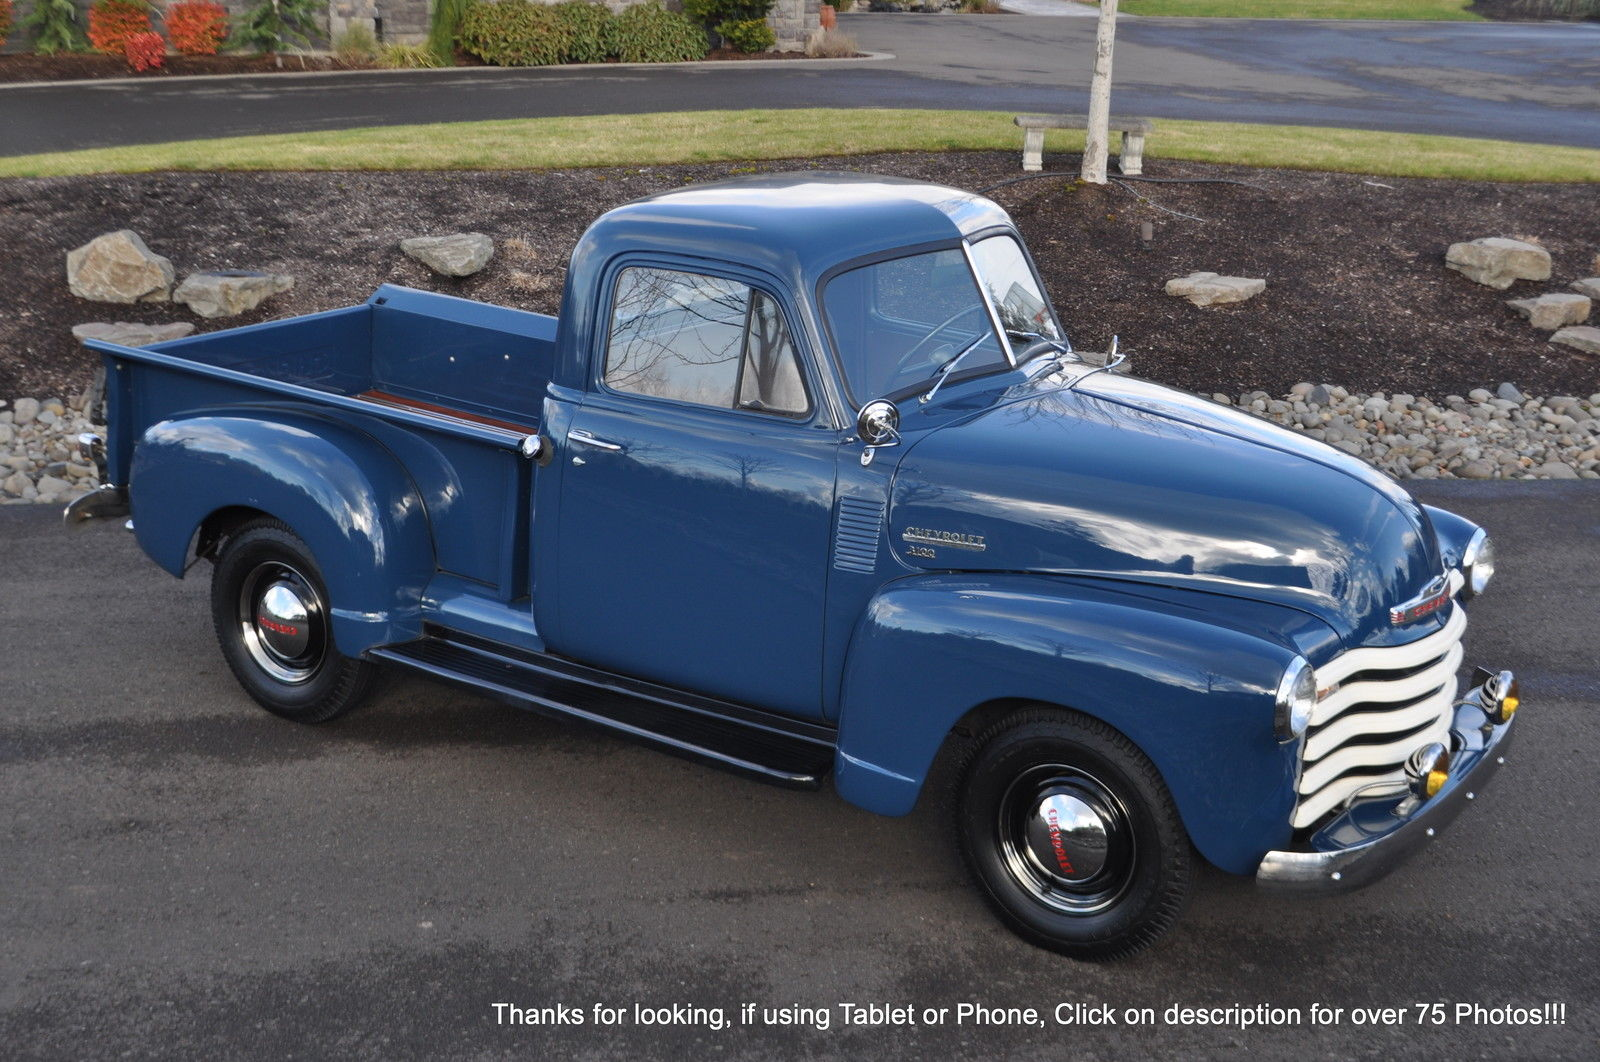 1951 Chevy 3100 1 2 Short Bed 216 Unitied States Air Force Usaf Vin Tag Chevrolet Other Pickups No Reserve Prevnext